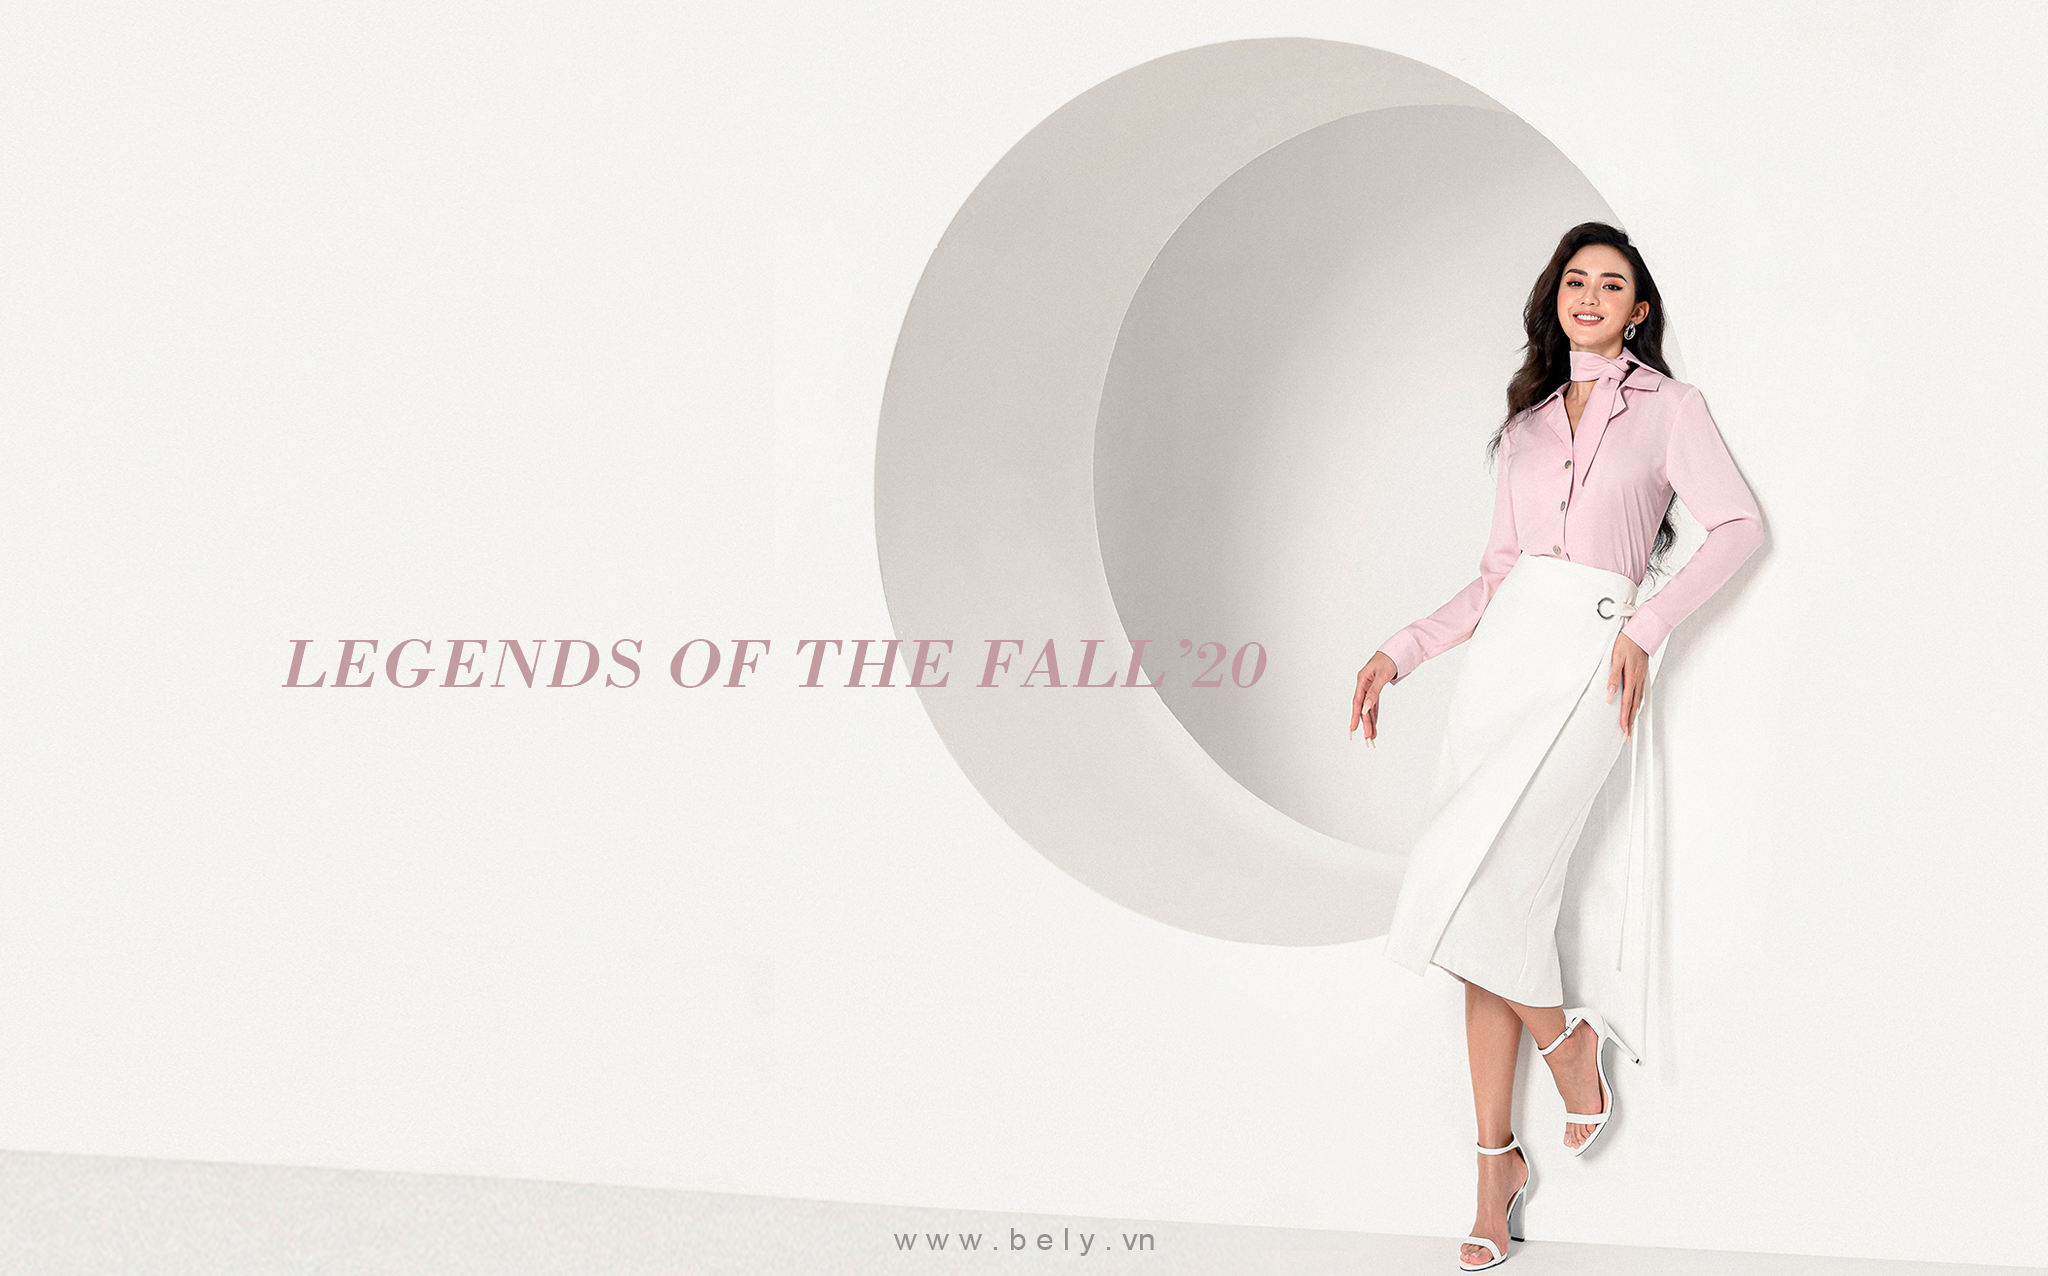 """LEGENDS OF THE FALL """"20"""